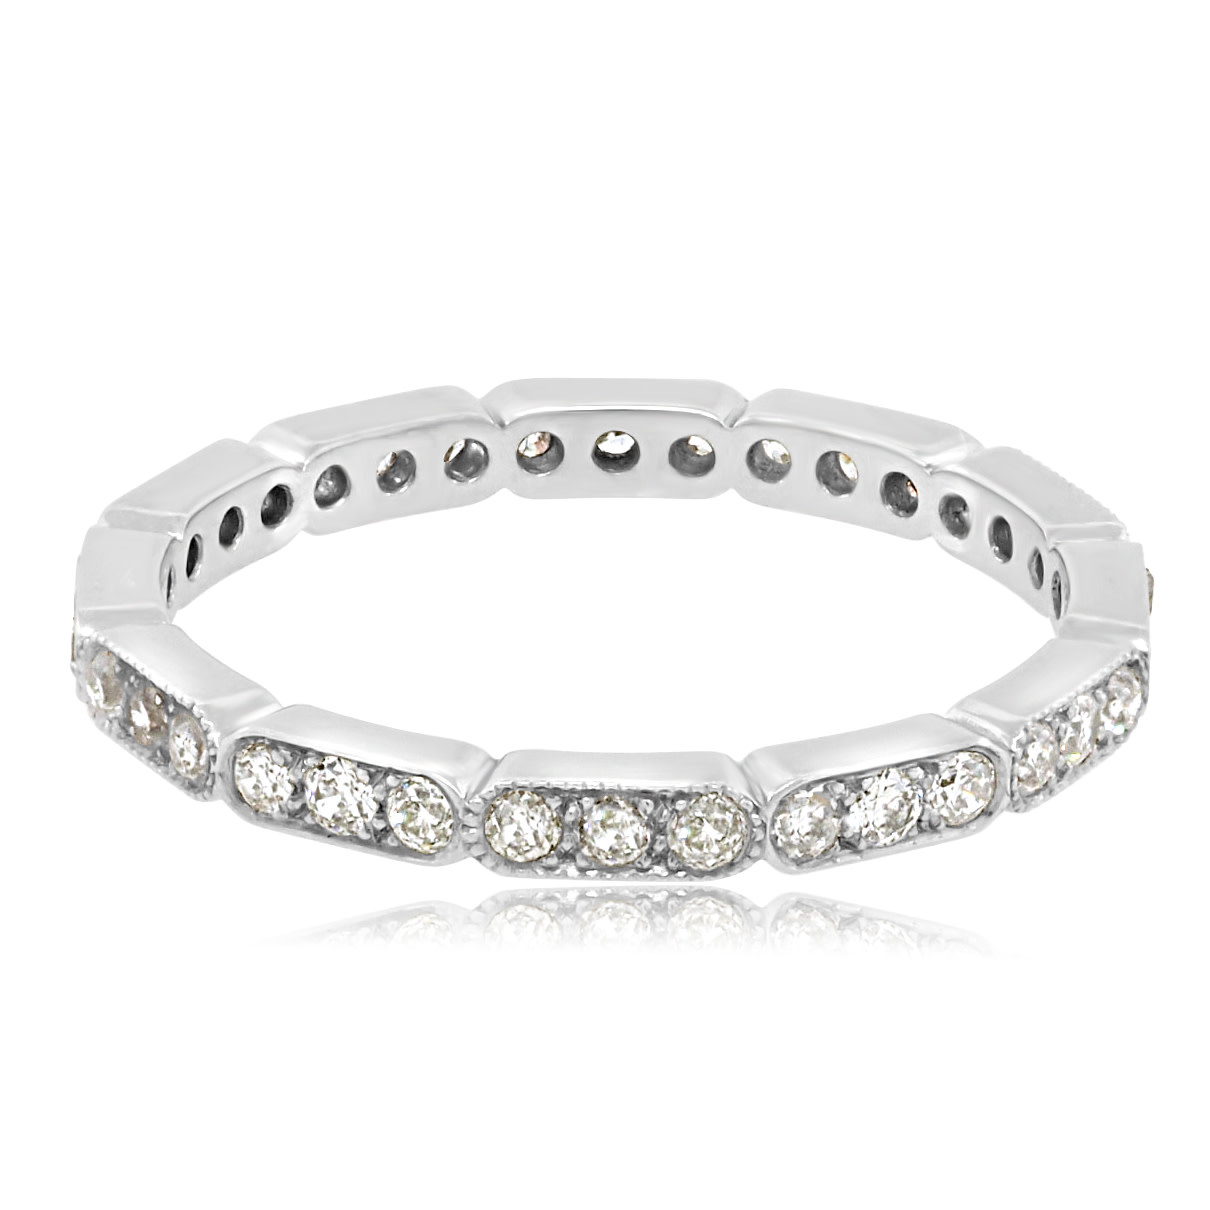 3 x 3 Pattern Diamond Pave Eternity Band